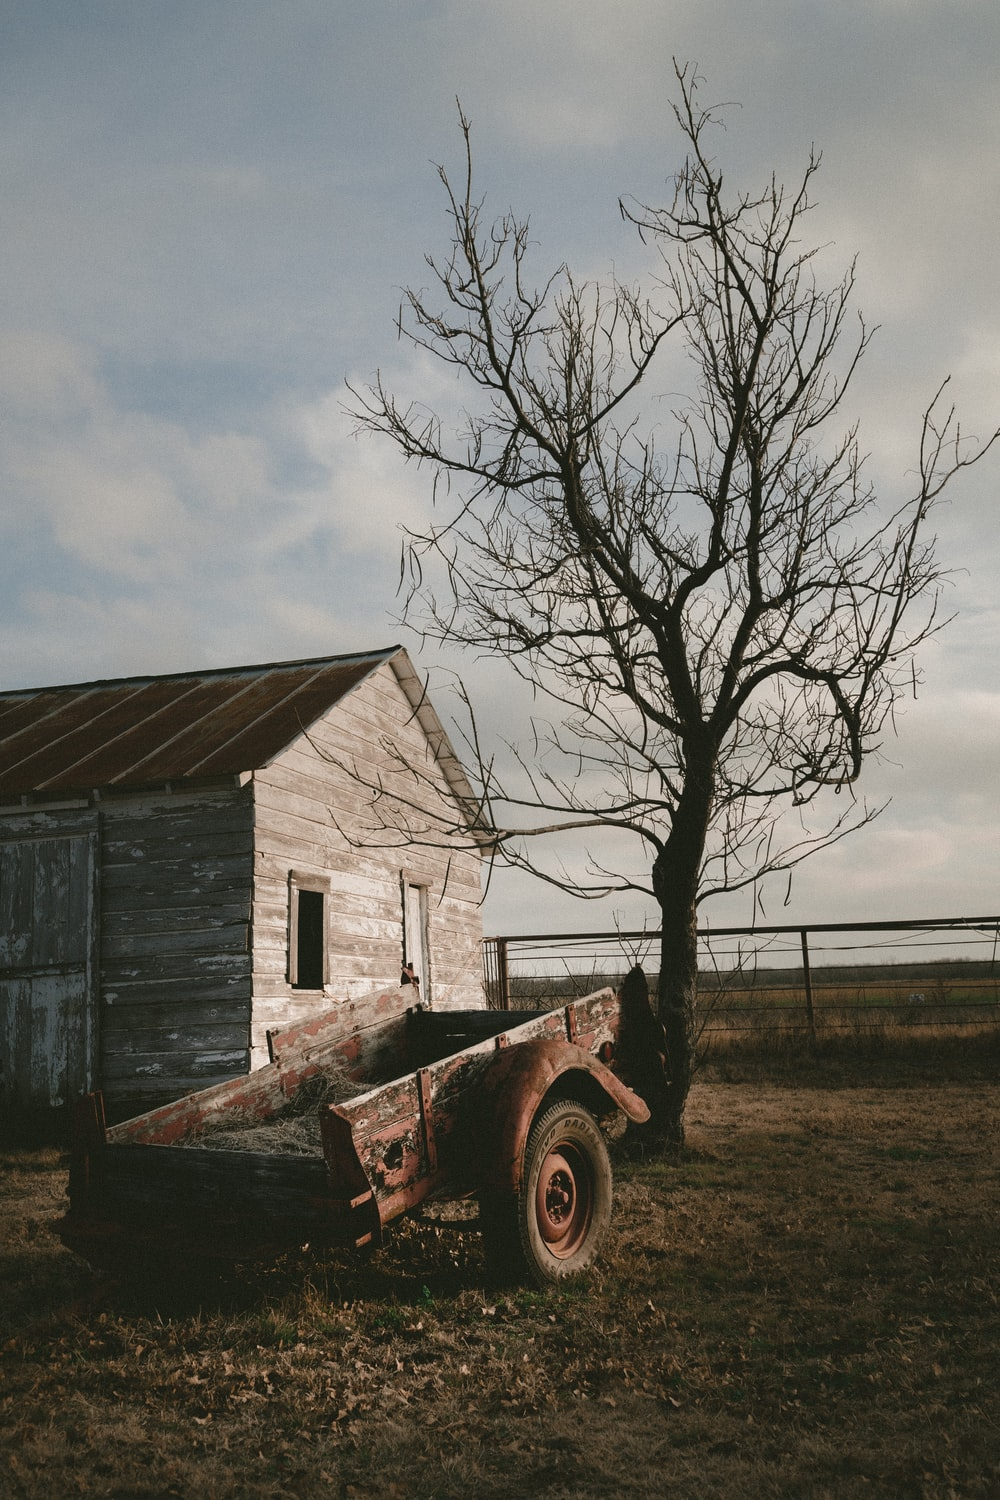 wagon near wooden house and bare tree